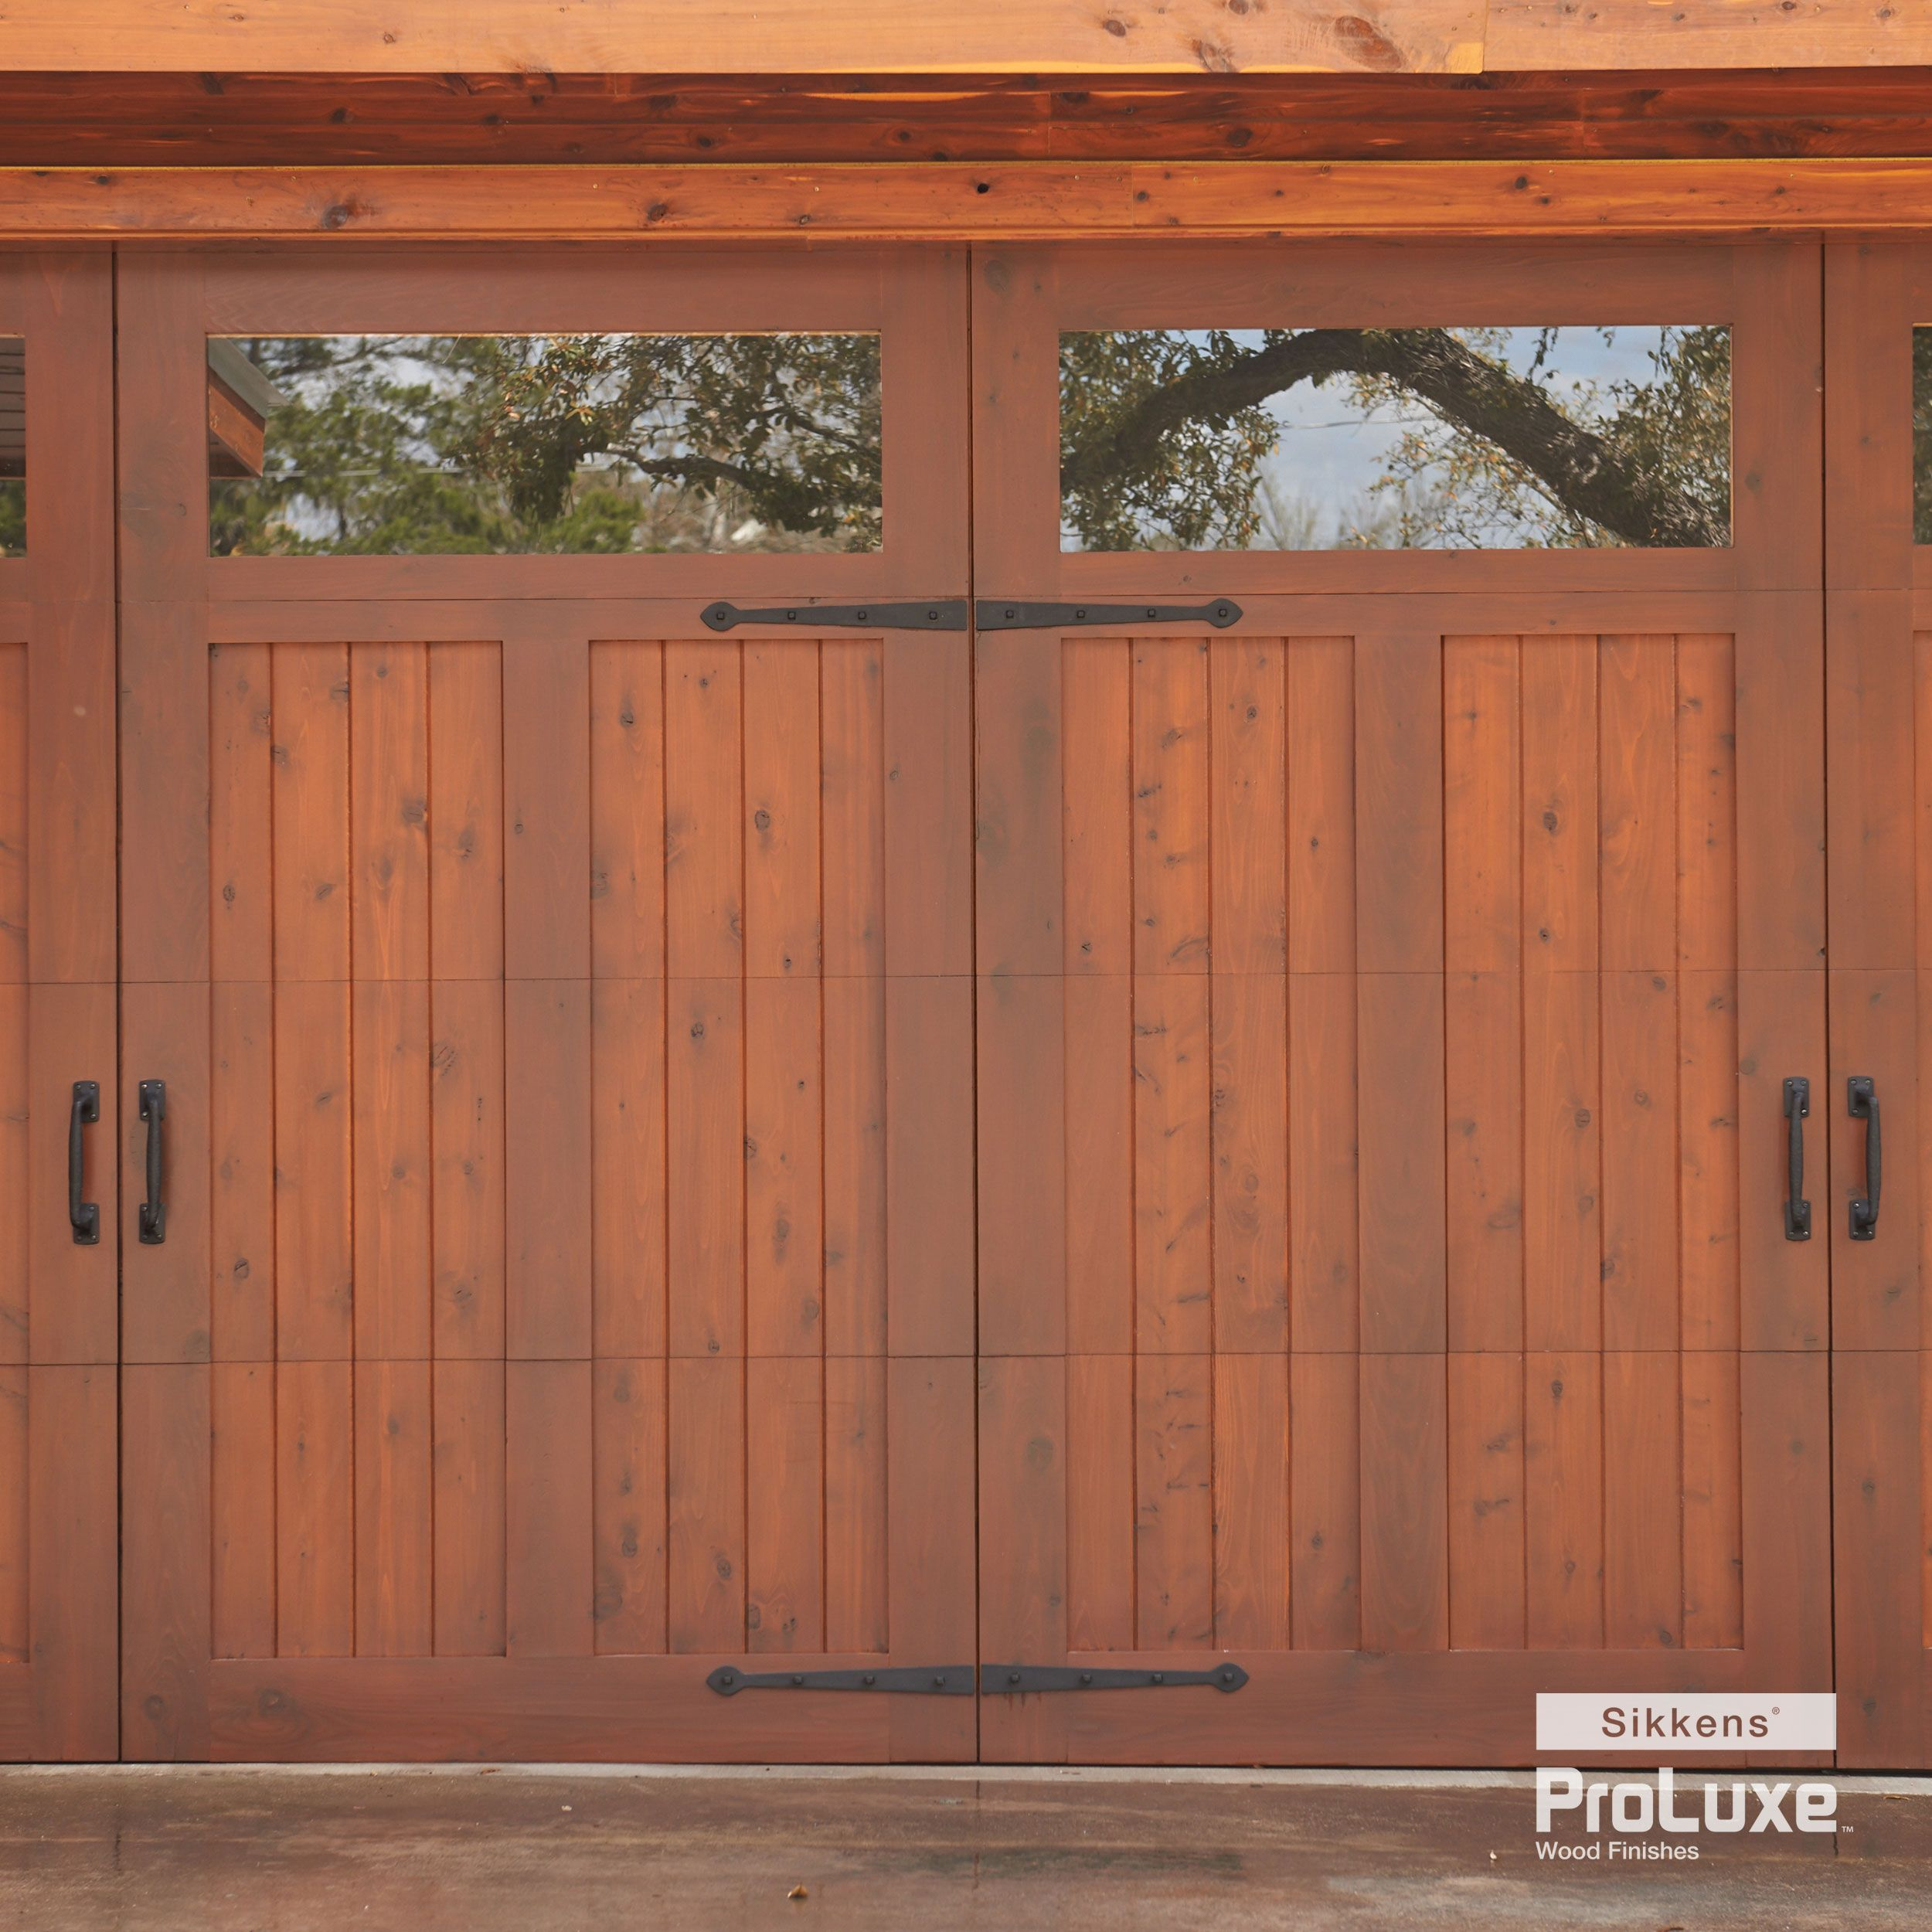 Garage Door And Siding Featuring Sikkens Proluxe Cetol Srd In Redwood